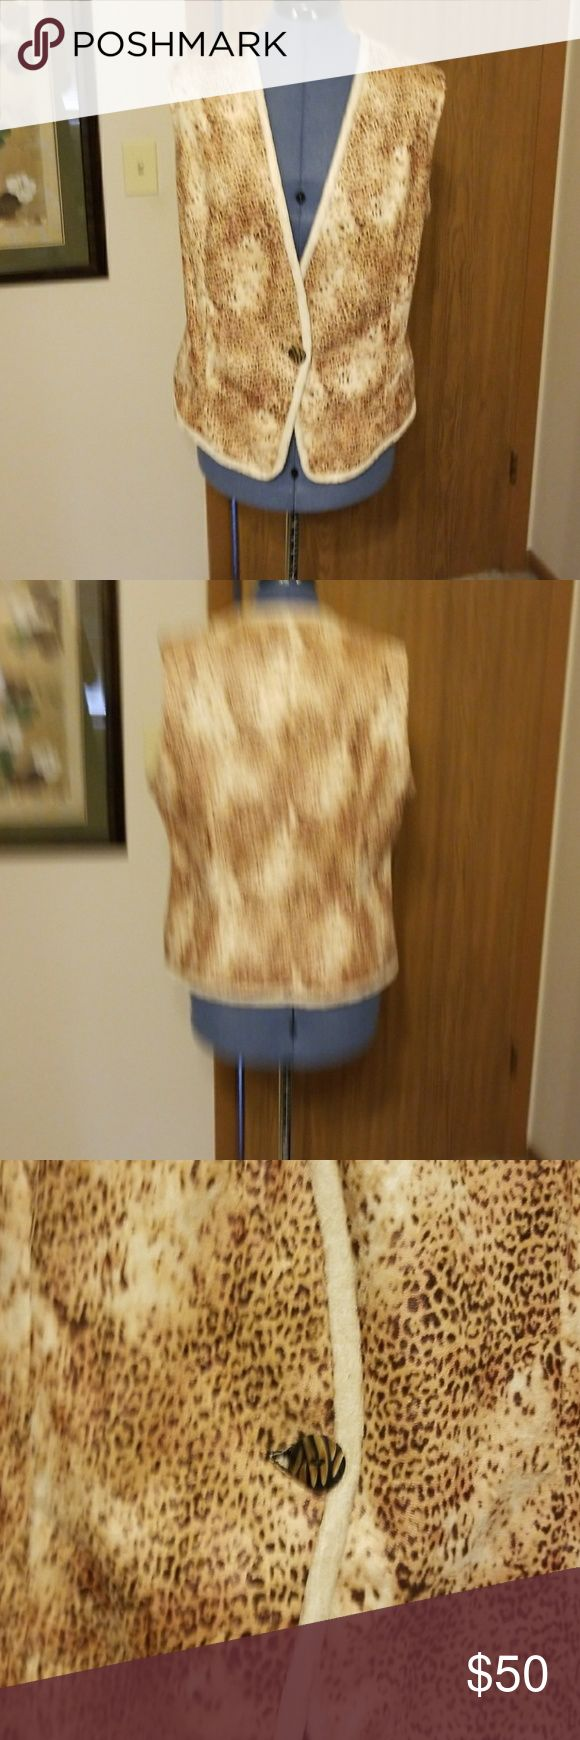 Custom made Suede cloth animal print vest This suede cloth animal print vest is handmade by me. It is fully line with black crape and trimmed in a solid textured suede cloth as well. It is a size 12 and would look great in anyone's fall wardrobe! custom Other